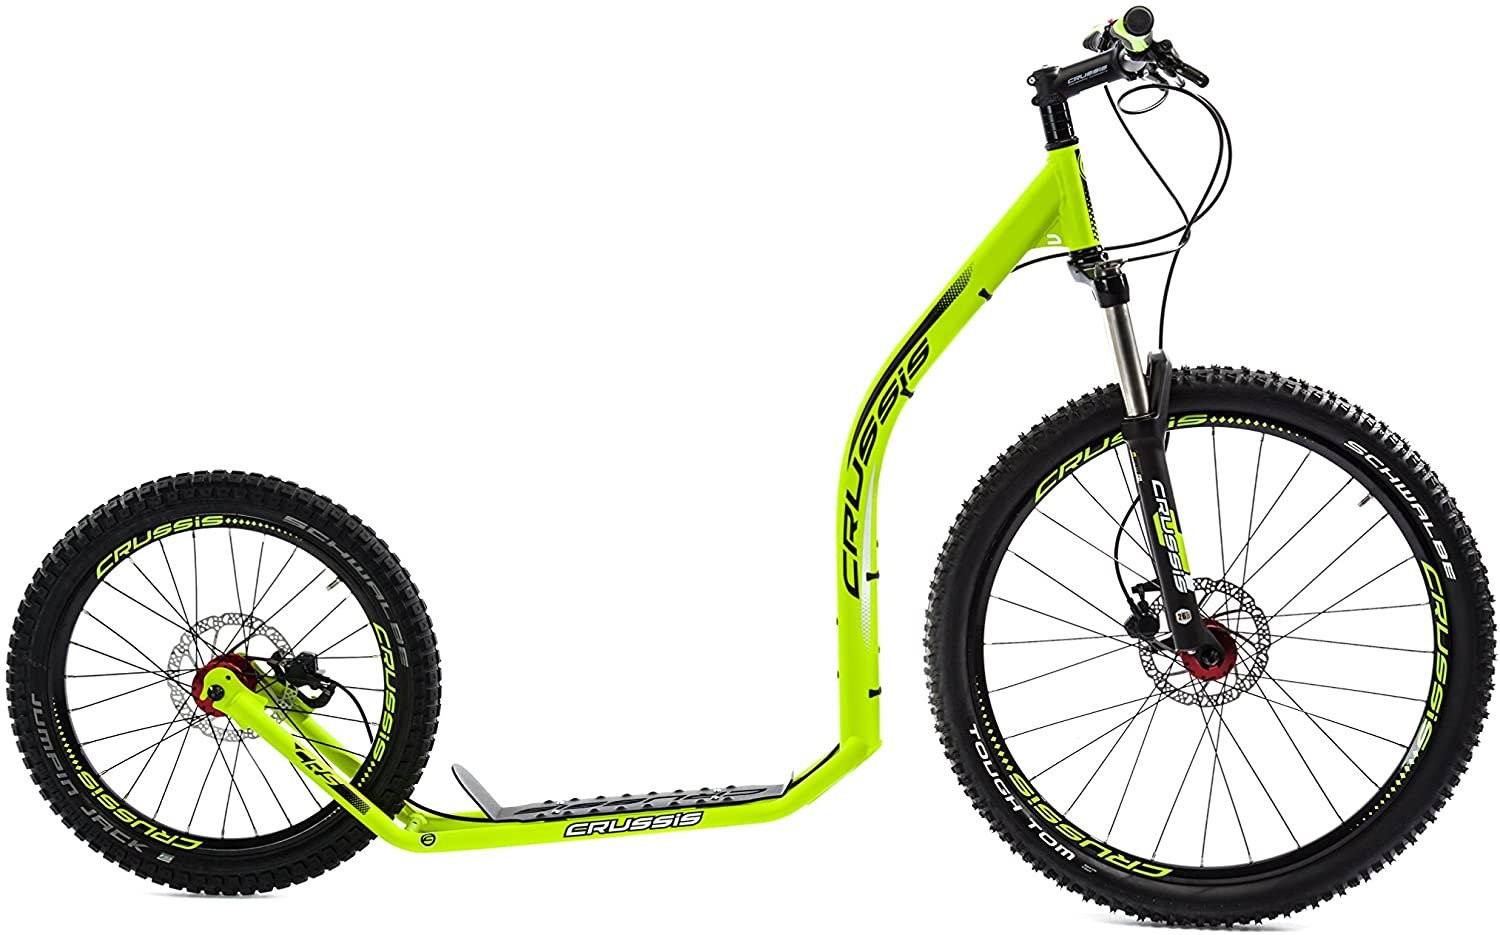 CRUSSIS CROSS TRETROLLER 6.2 GREEN 26/20 HD